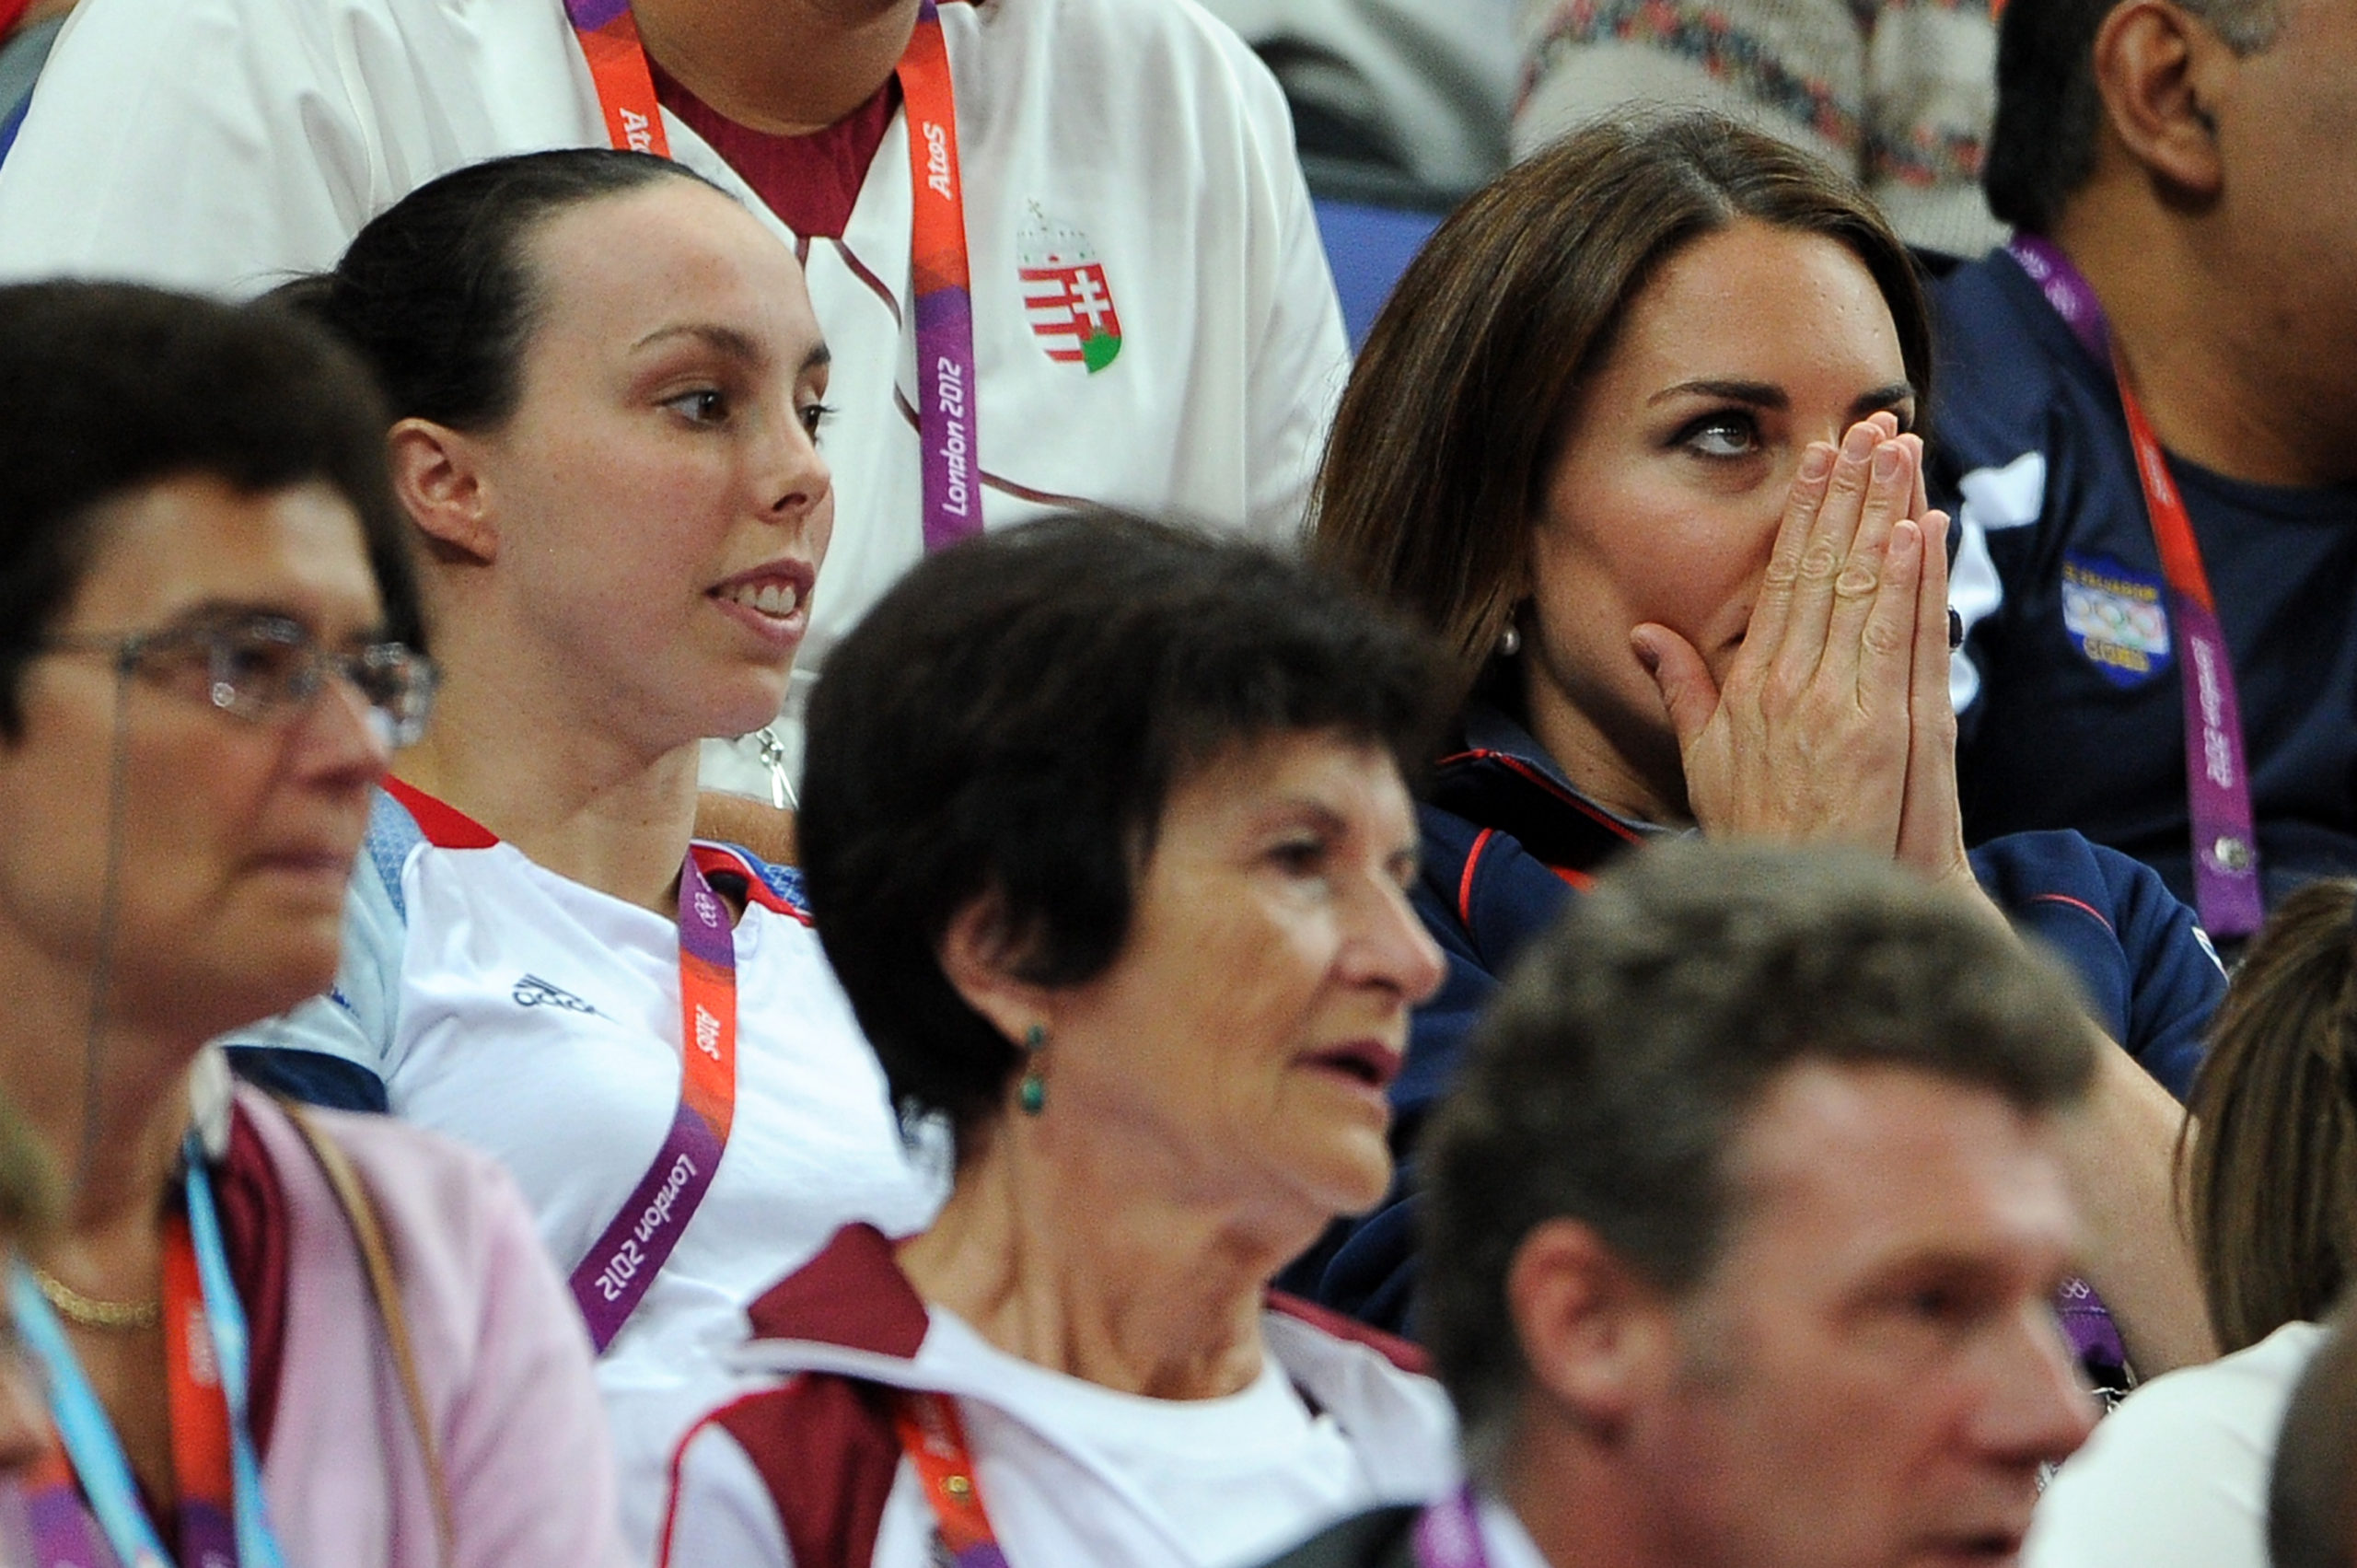 Kate Middleton Reacts To Watch Gymnastics Day Night Olympics Summer 2012 London